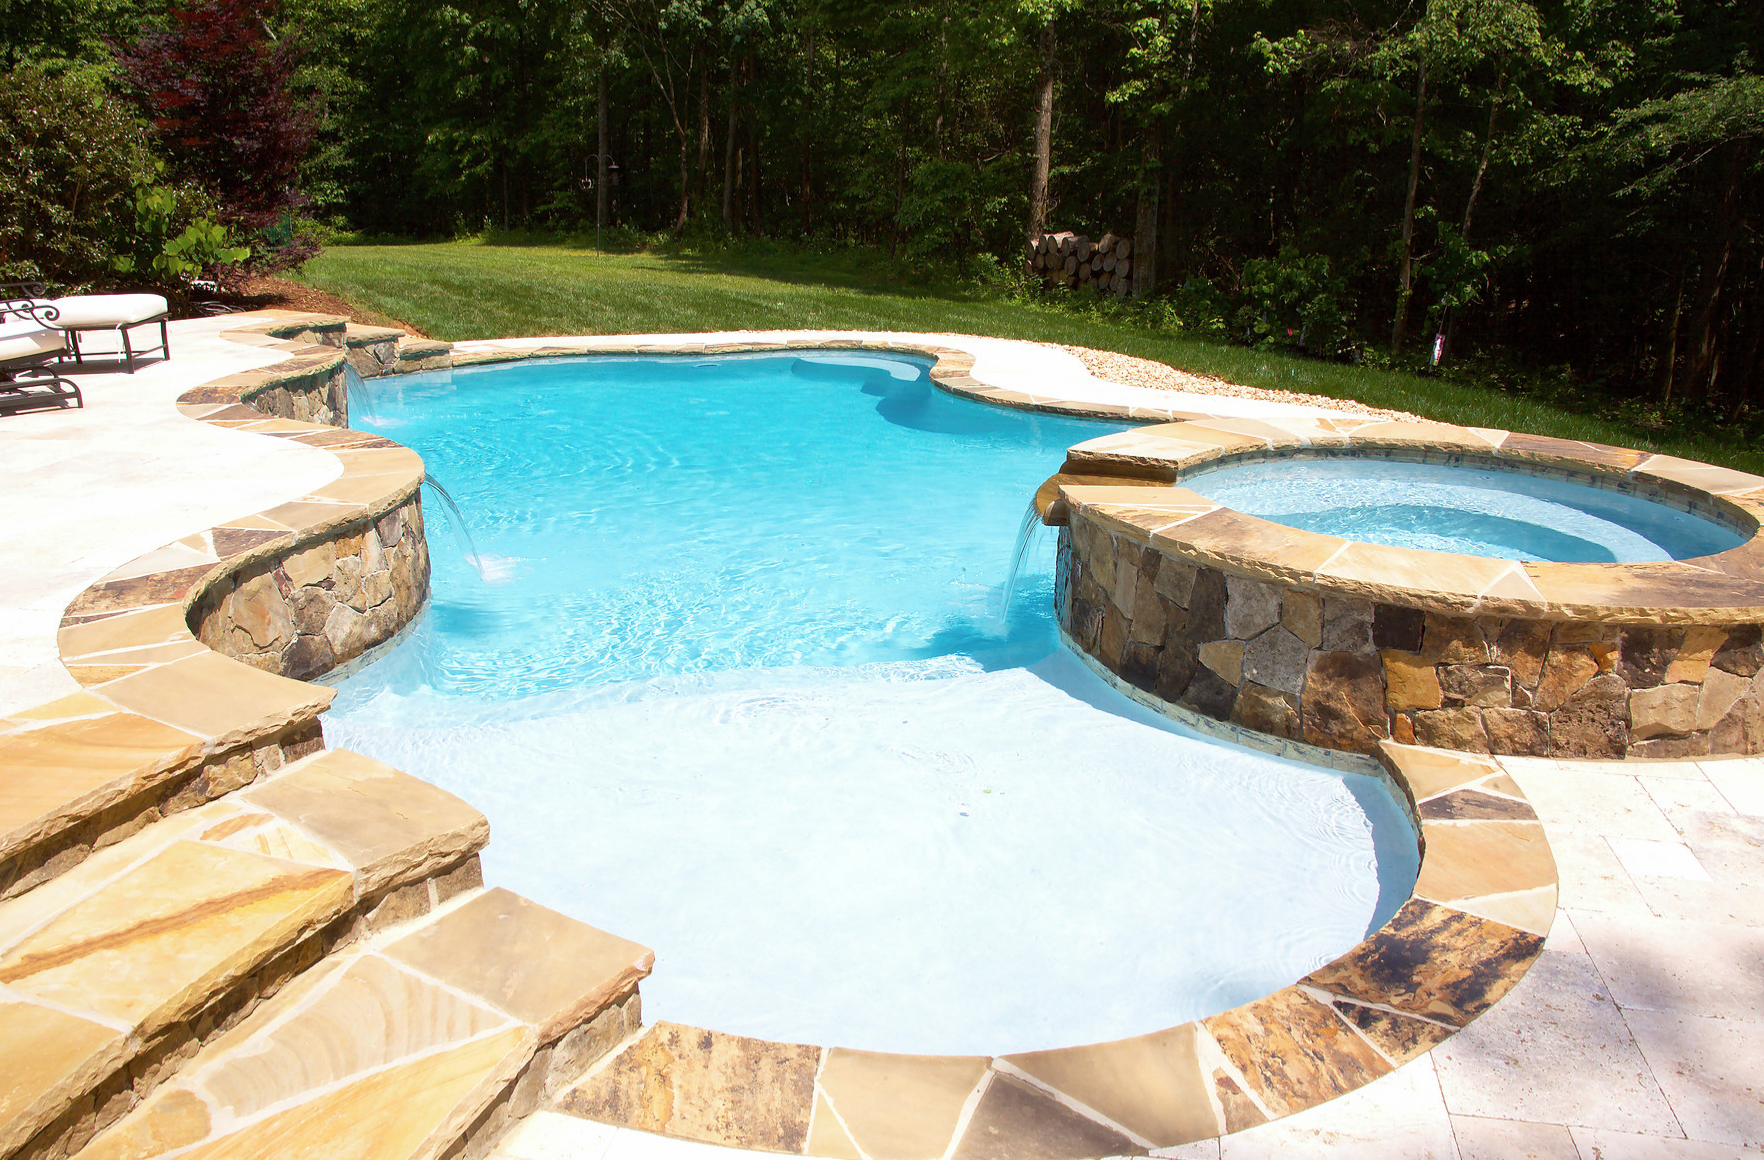 Vinyl Liner Pools Vs Concrete Swimming Pools, Which Is A ...